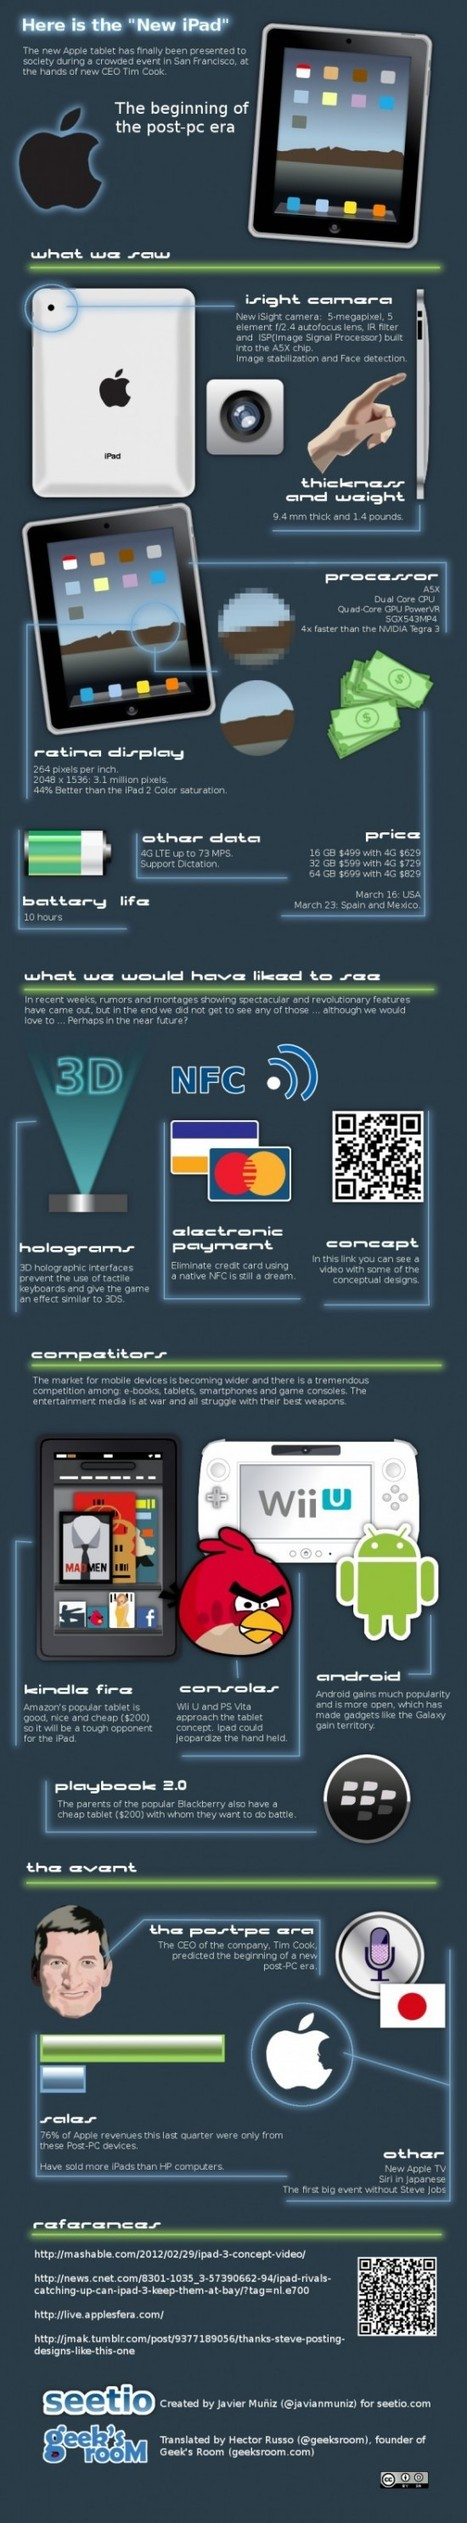 The New Ipad Infographic « Infographic – Information Graphics, Information Design and Data Visualization | Mobile Marketing Strategy and beyond | Scoop.it